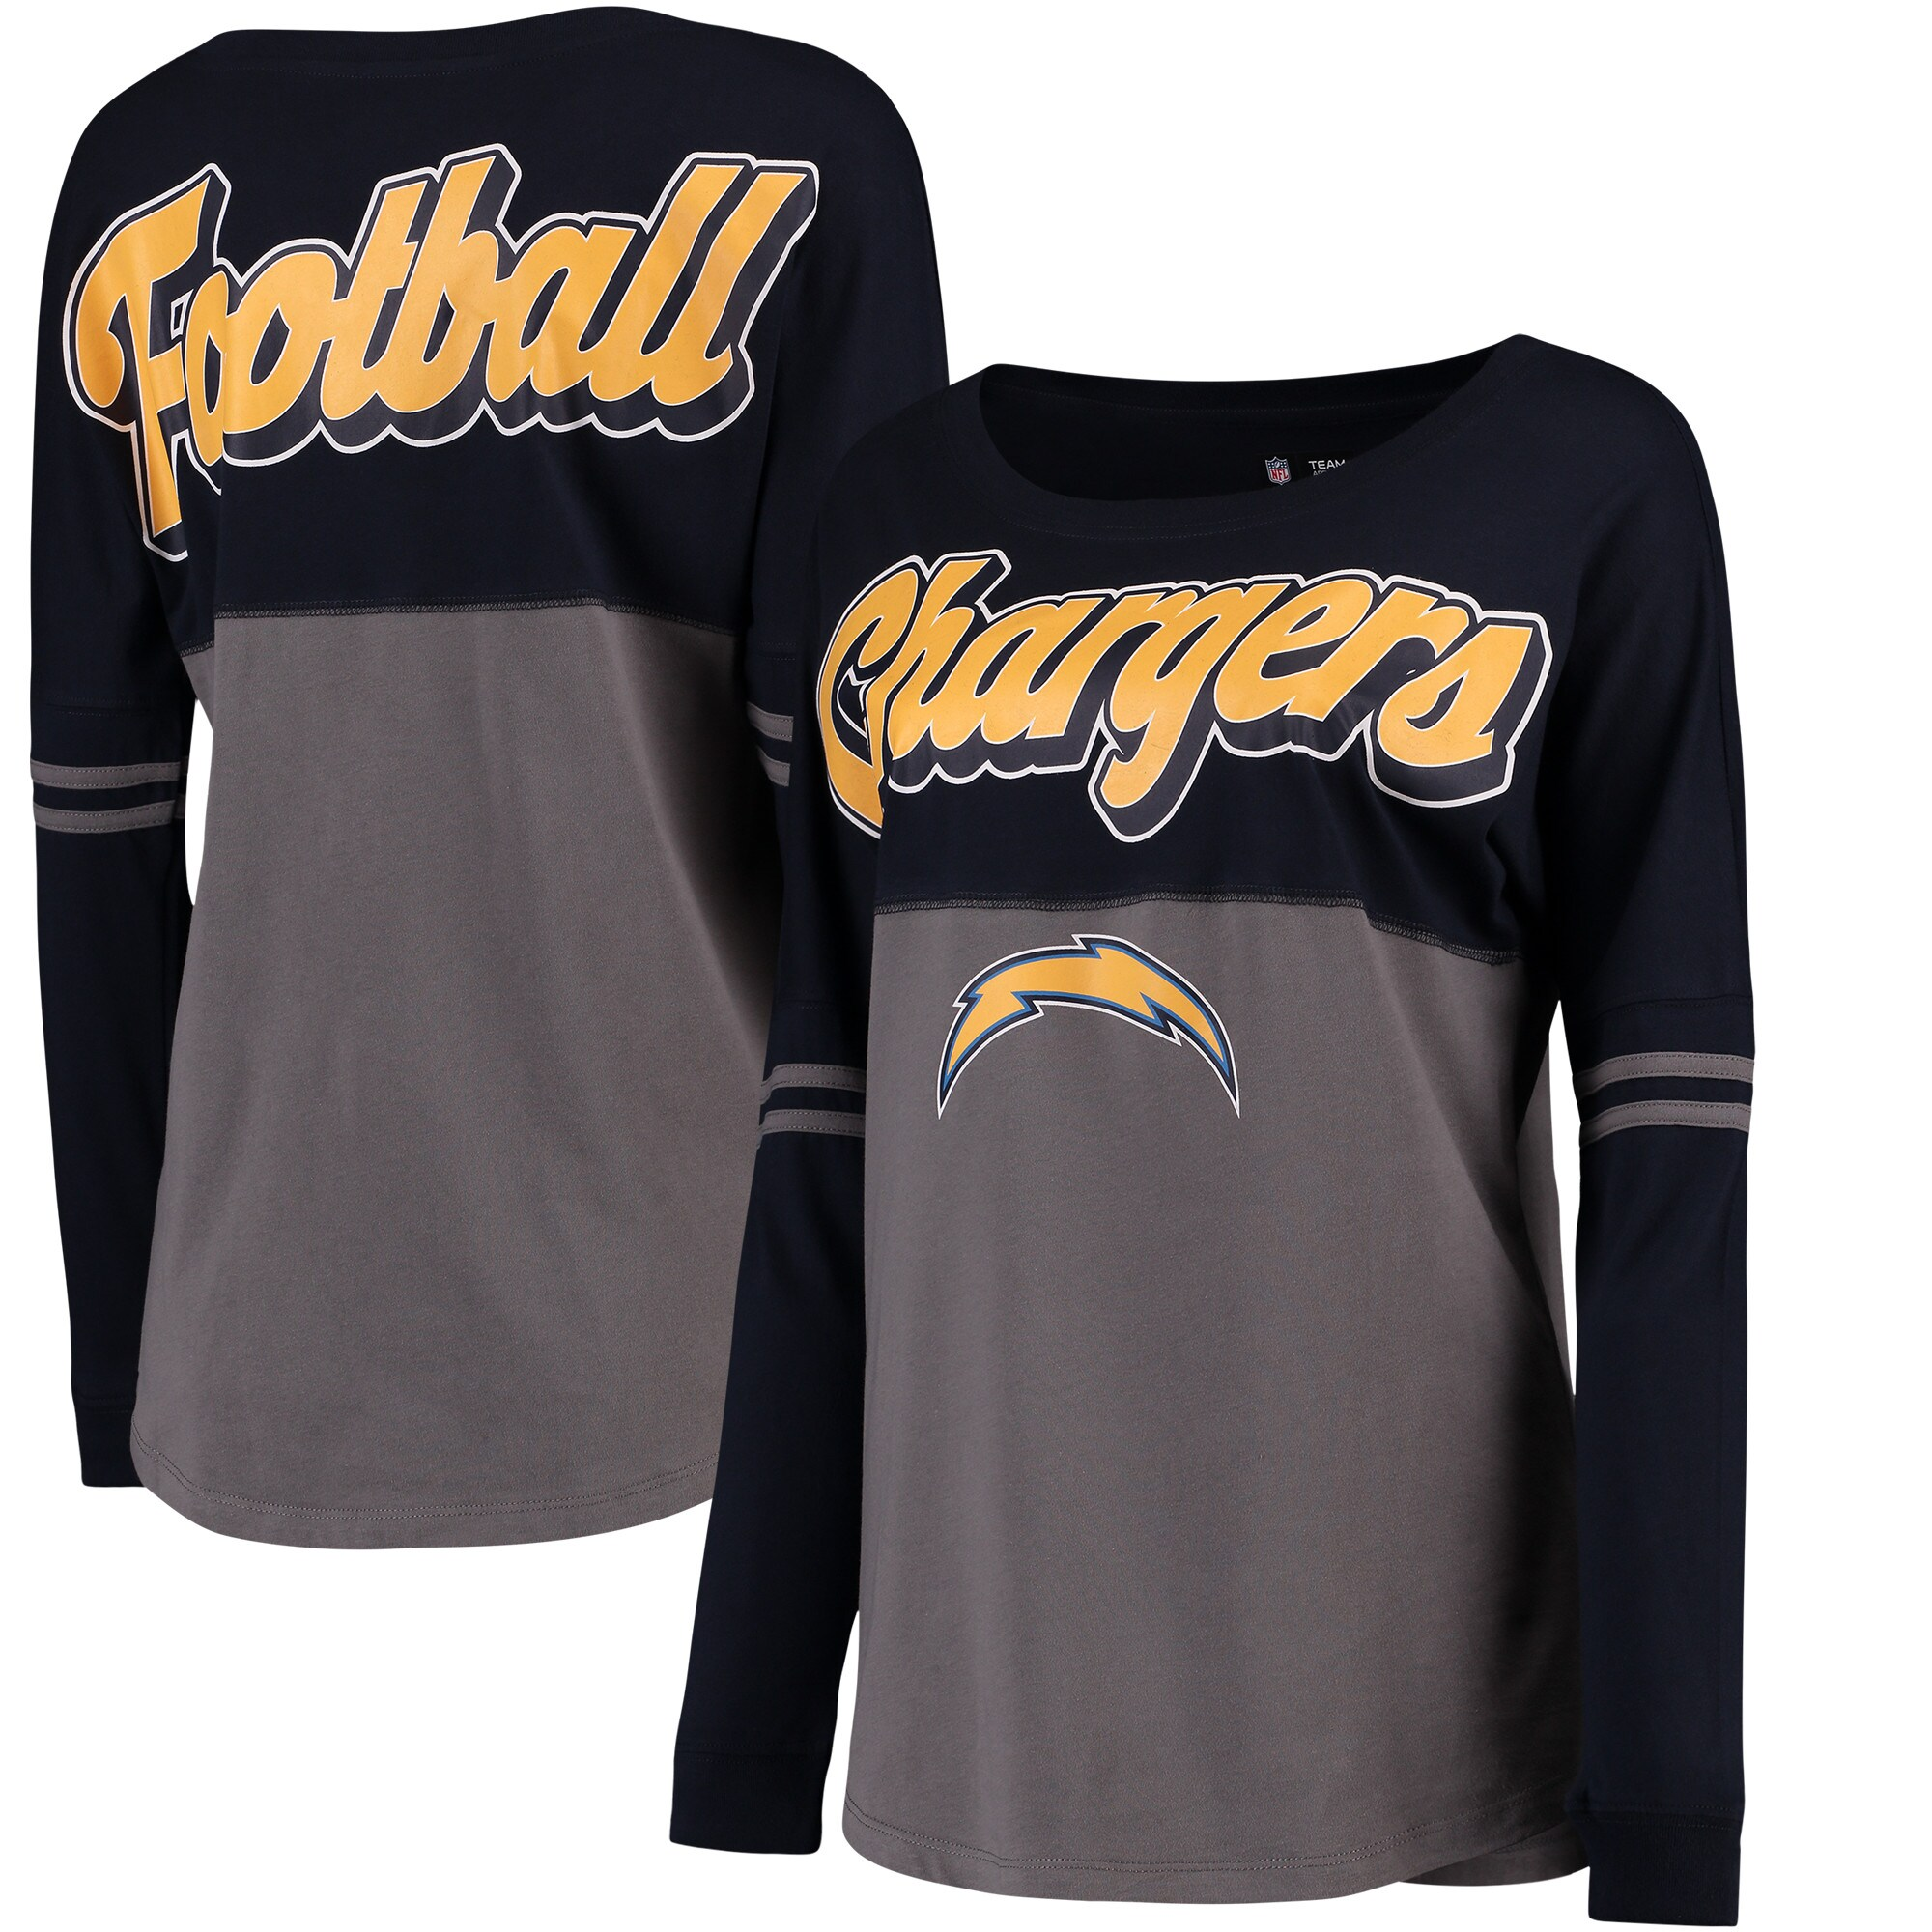 Los Angeles Chargers 5th & Ocean by New Era Women's Athletic Varsity Long Sleeve T-Shirt - Navy/Charcoal